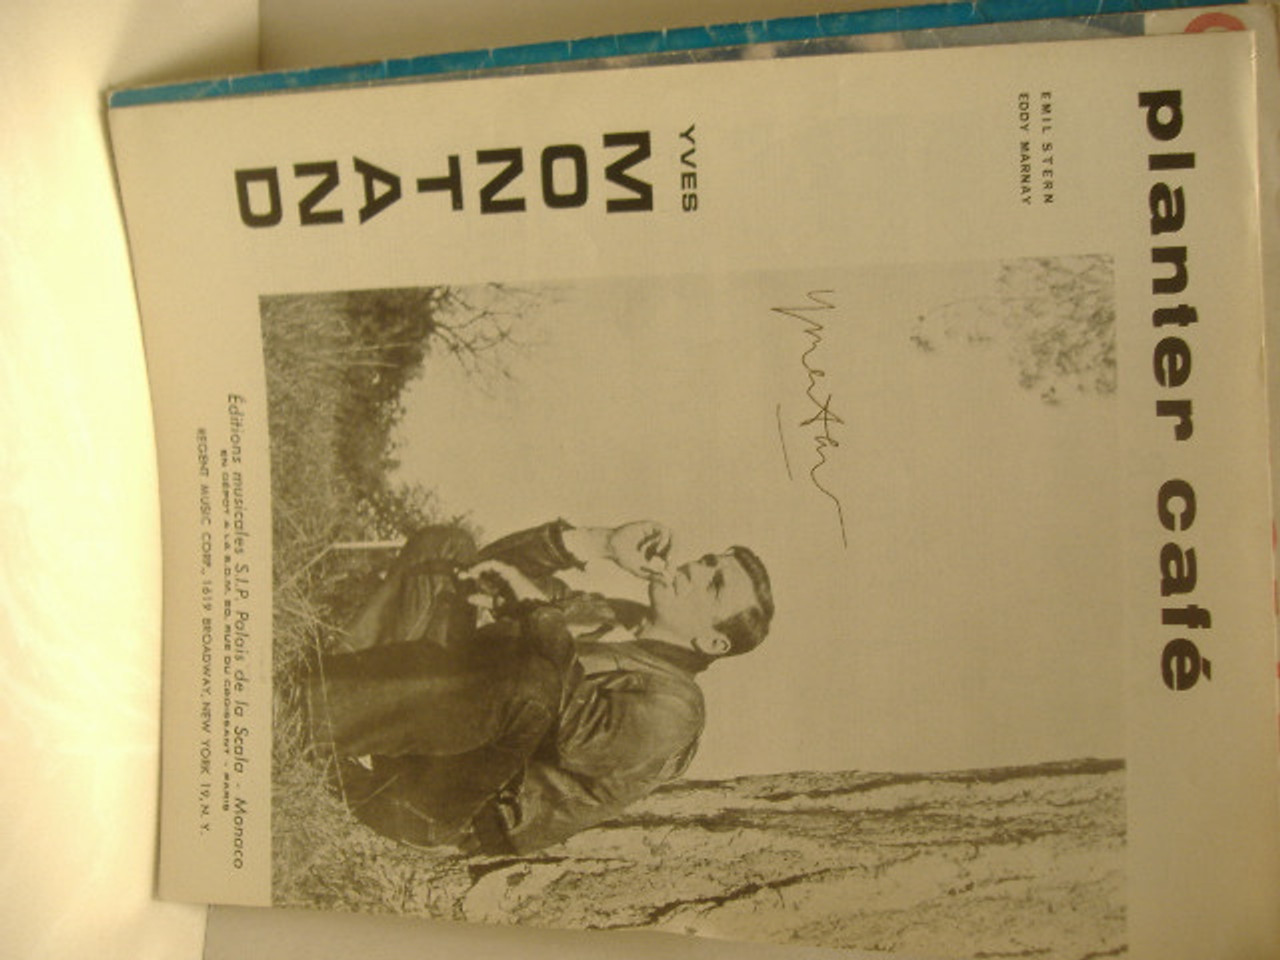 Montand, Yves Sheet Music Signed Autograph Planter Cafe 1958